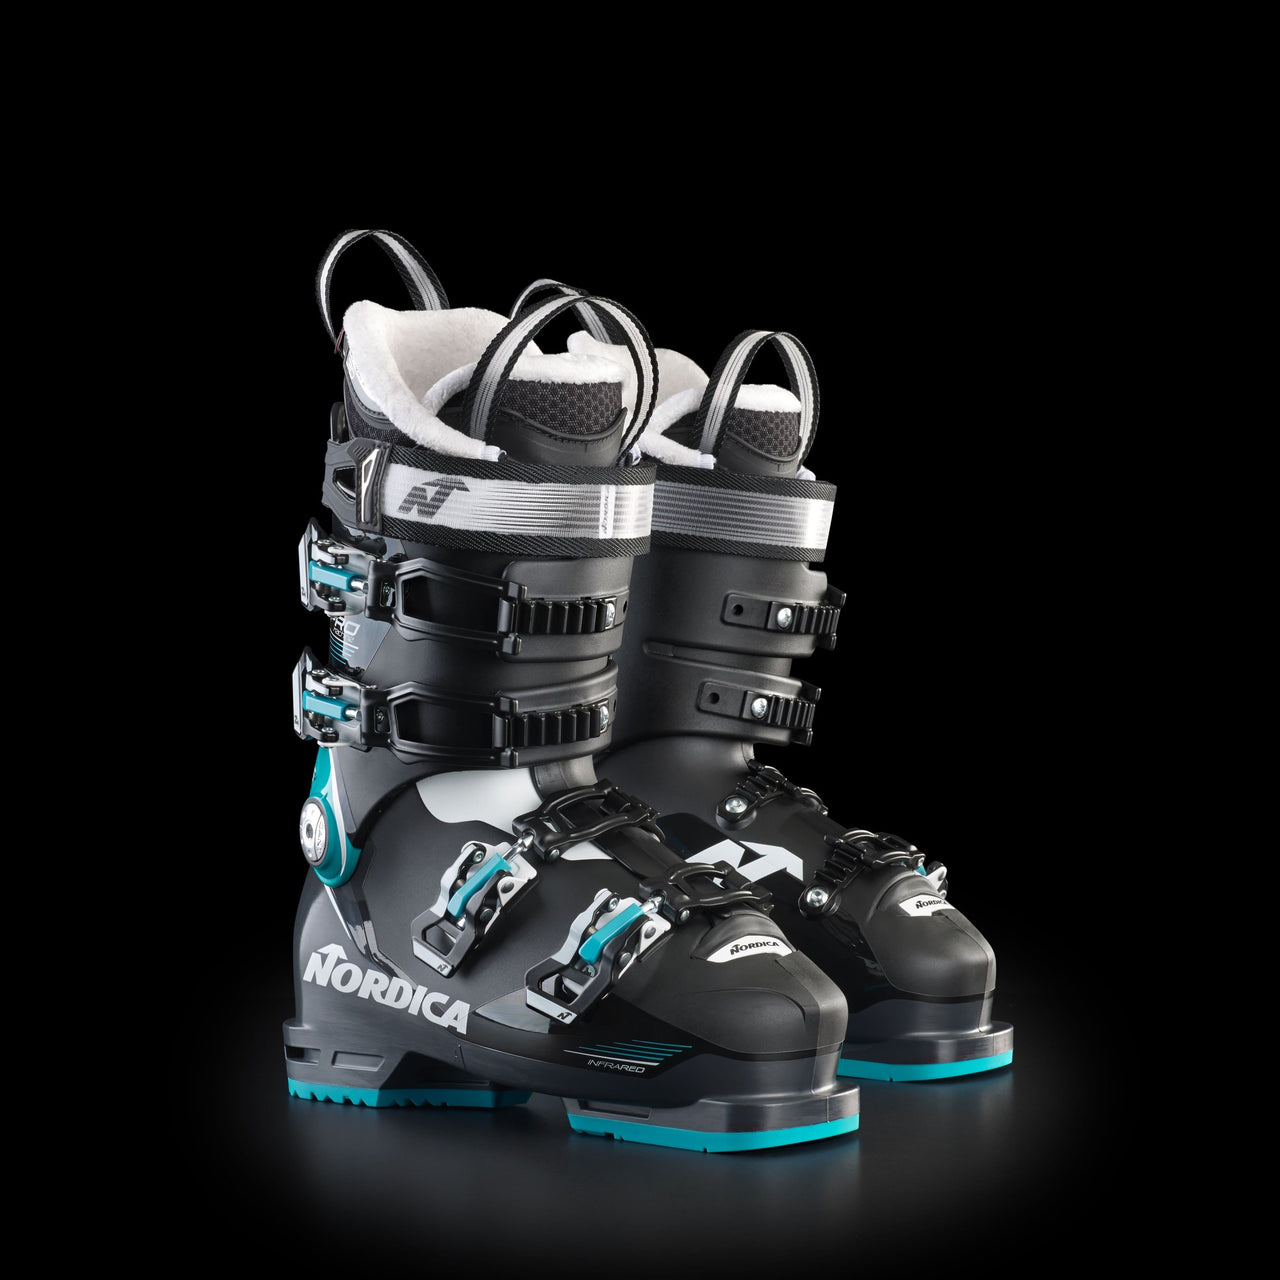 Nordica Women's Pro Machine 95